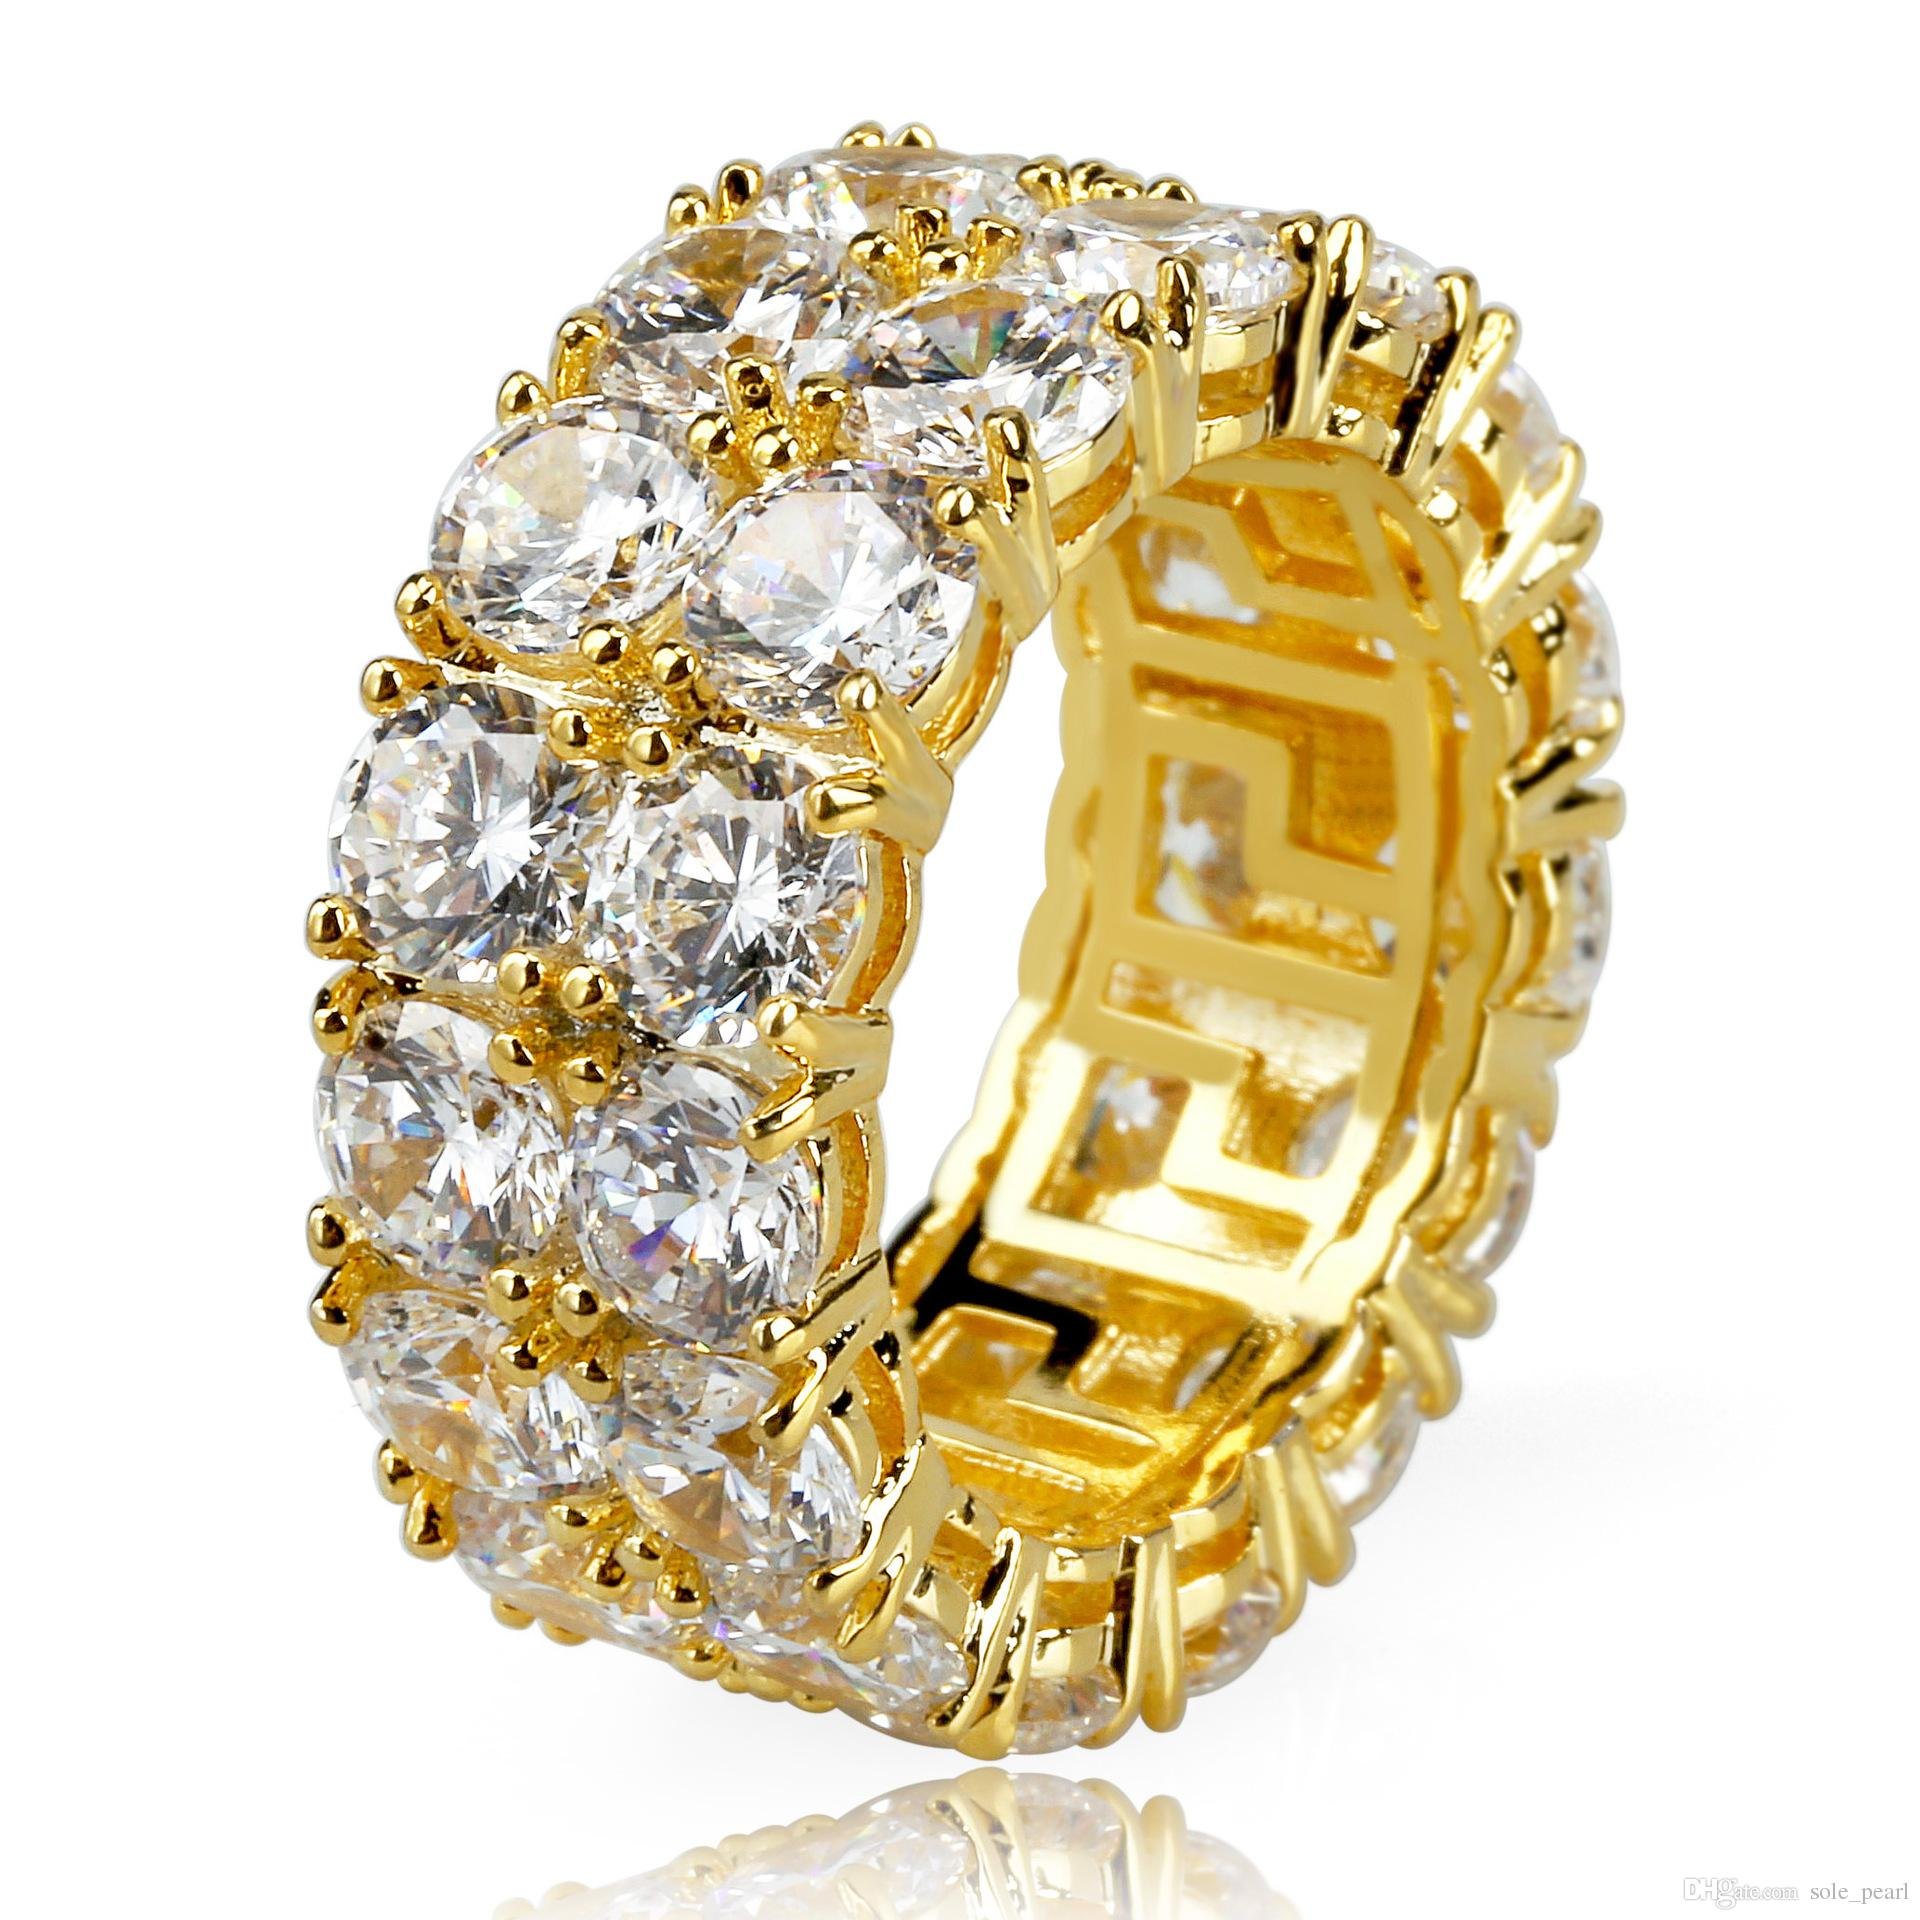 Mens Ring Vintage Hip Hop Jewelry Double Row Zircon Iced Out